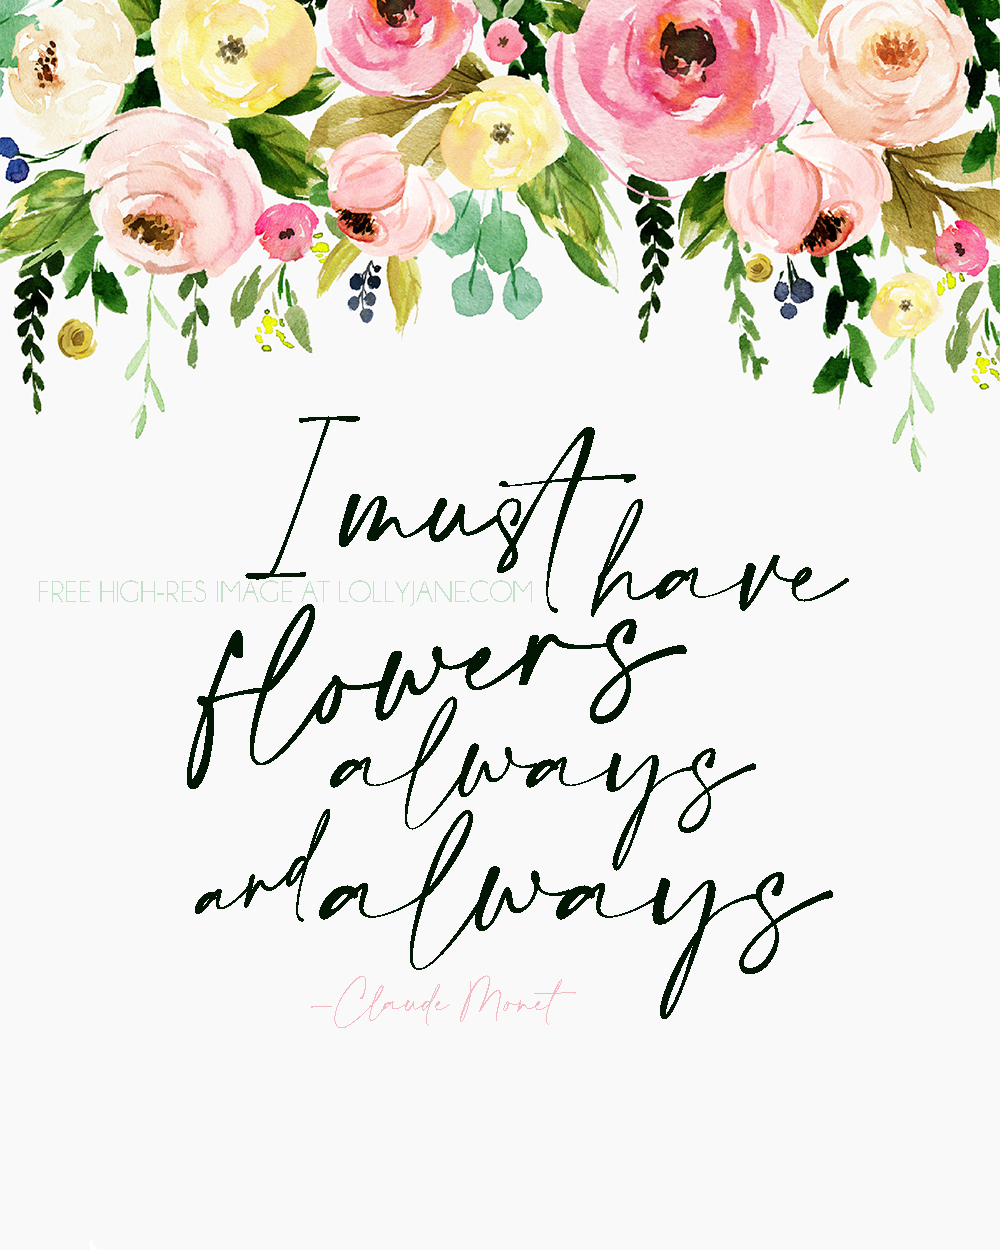 FREE Spring Floral Printable, love this quote by Claude Monet. Print this 8x10 then display for INSTANT spring decor! #freeprintable #printableart #springart #flowerart #printable #springhomedecor